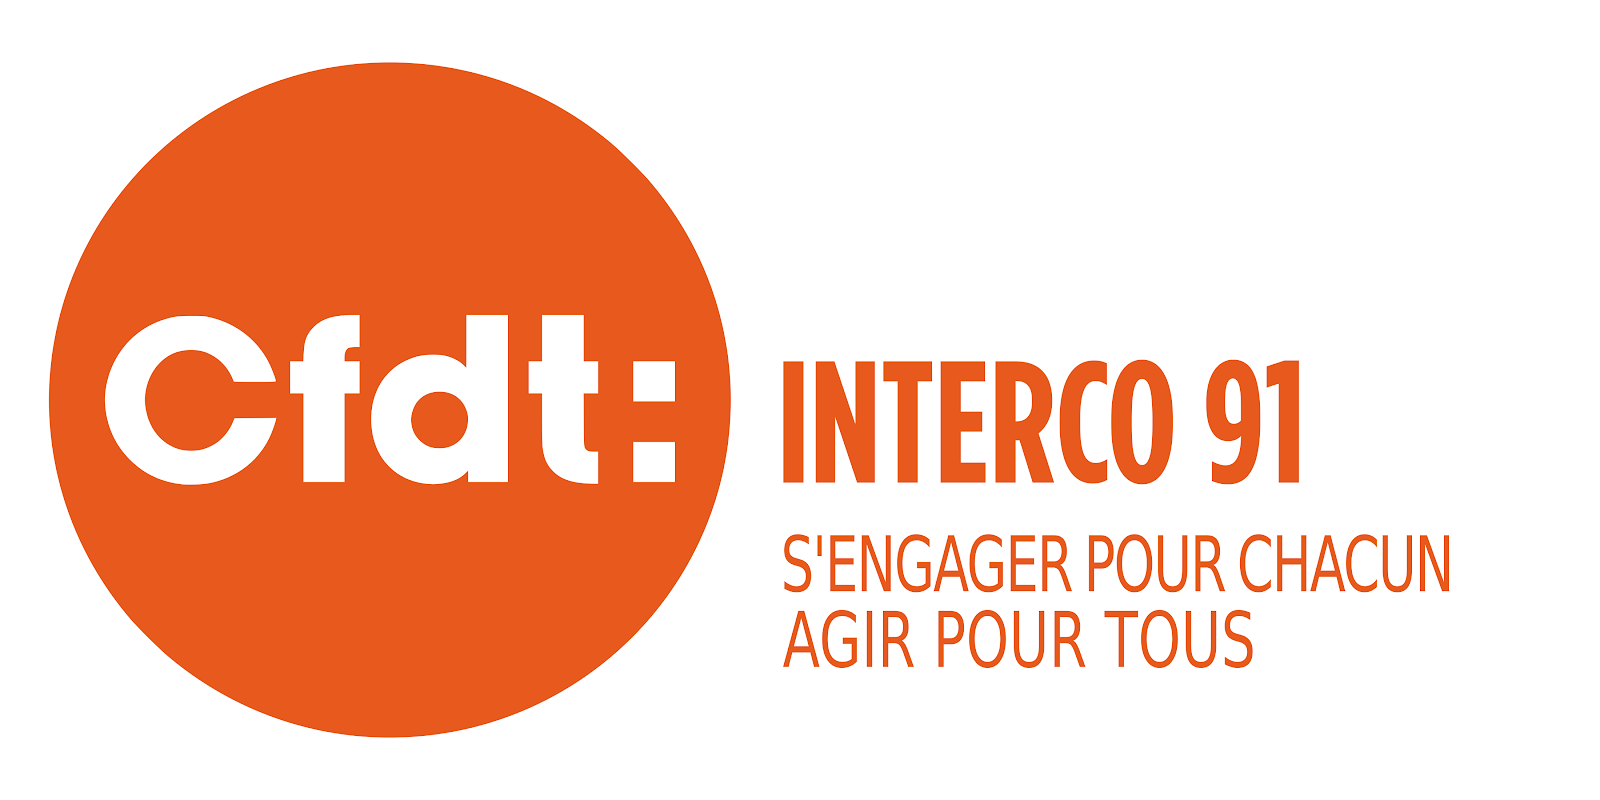 interco-91-orange_sengager.png